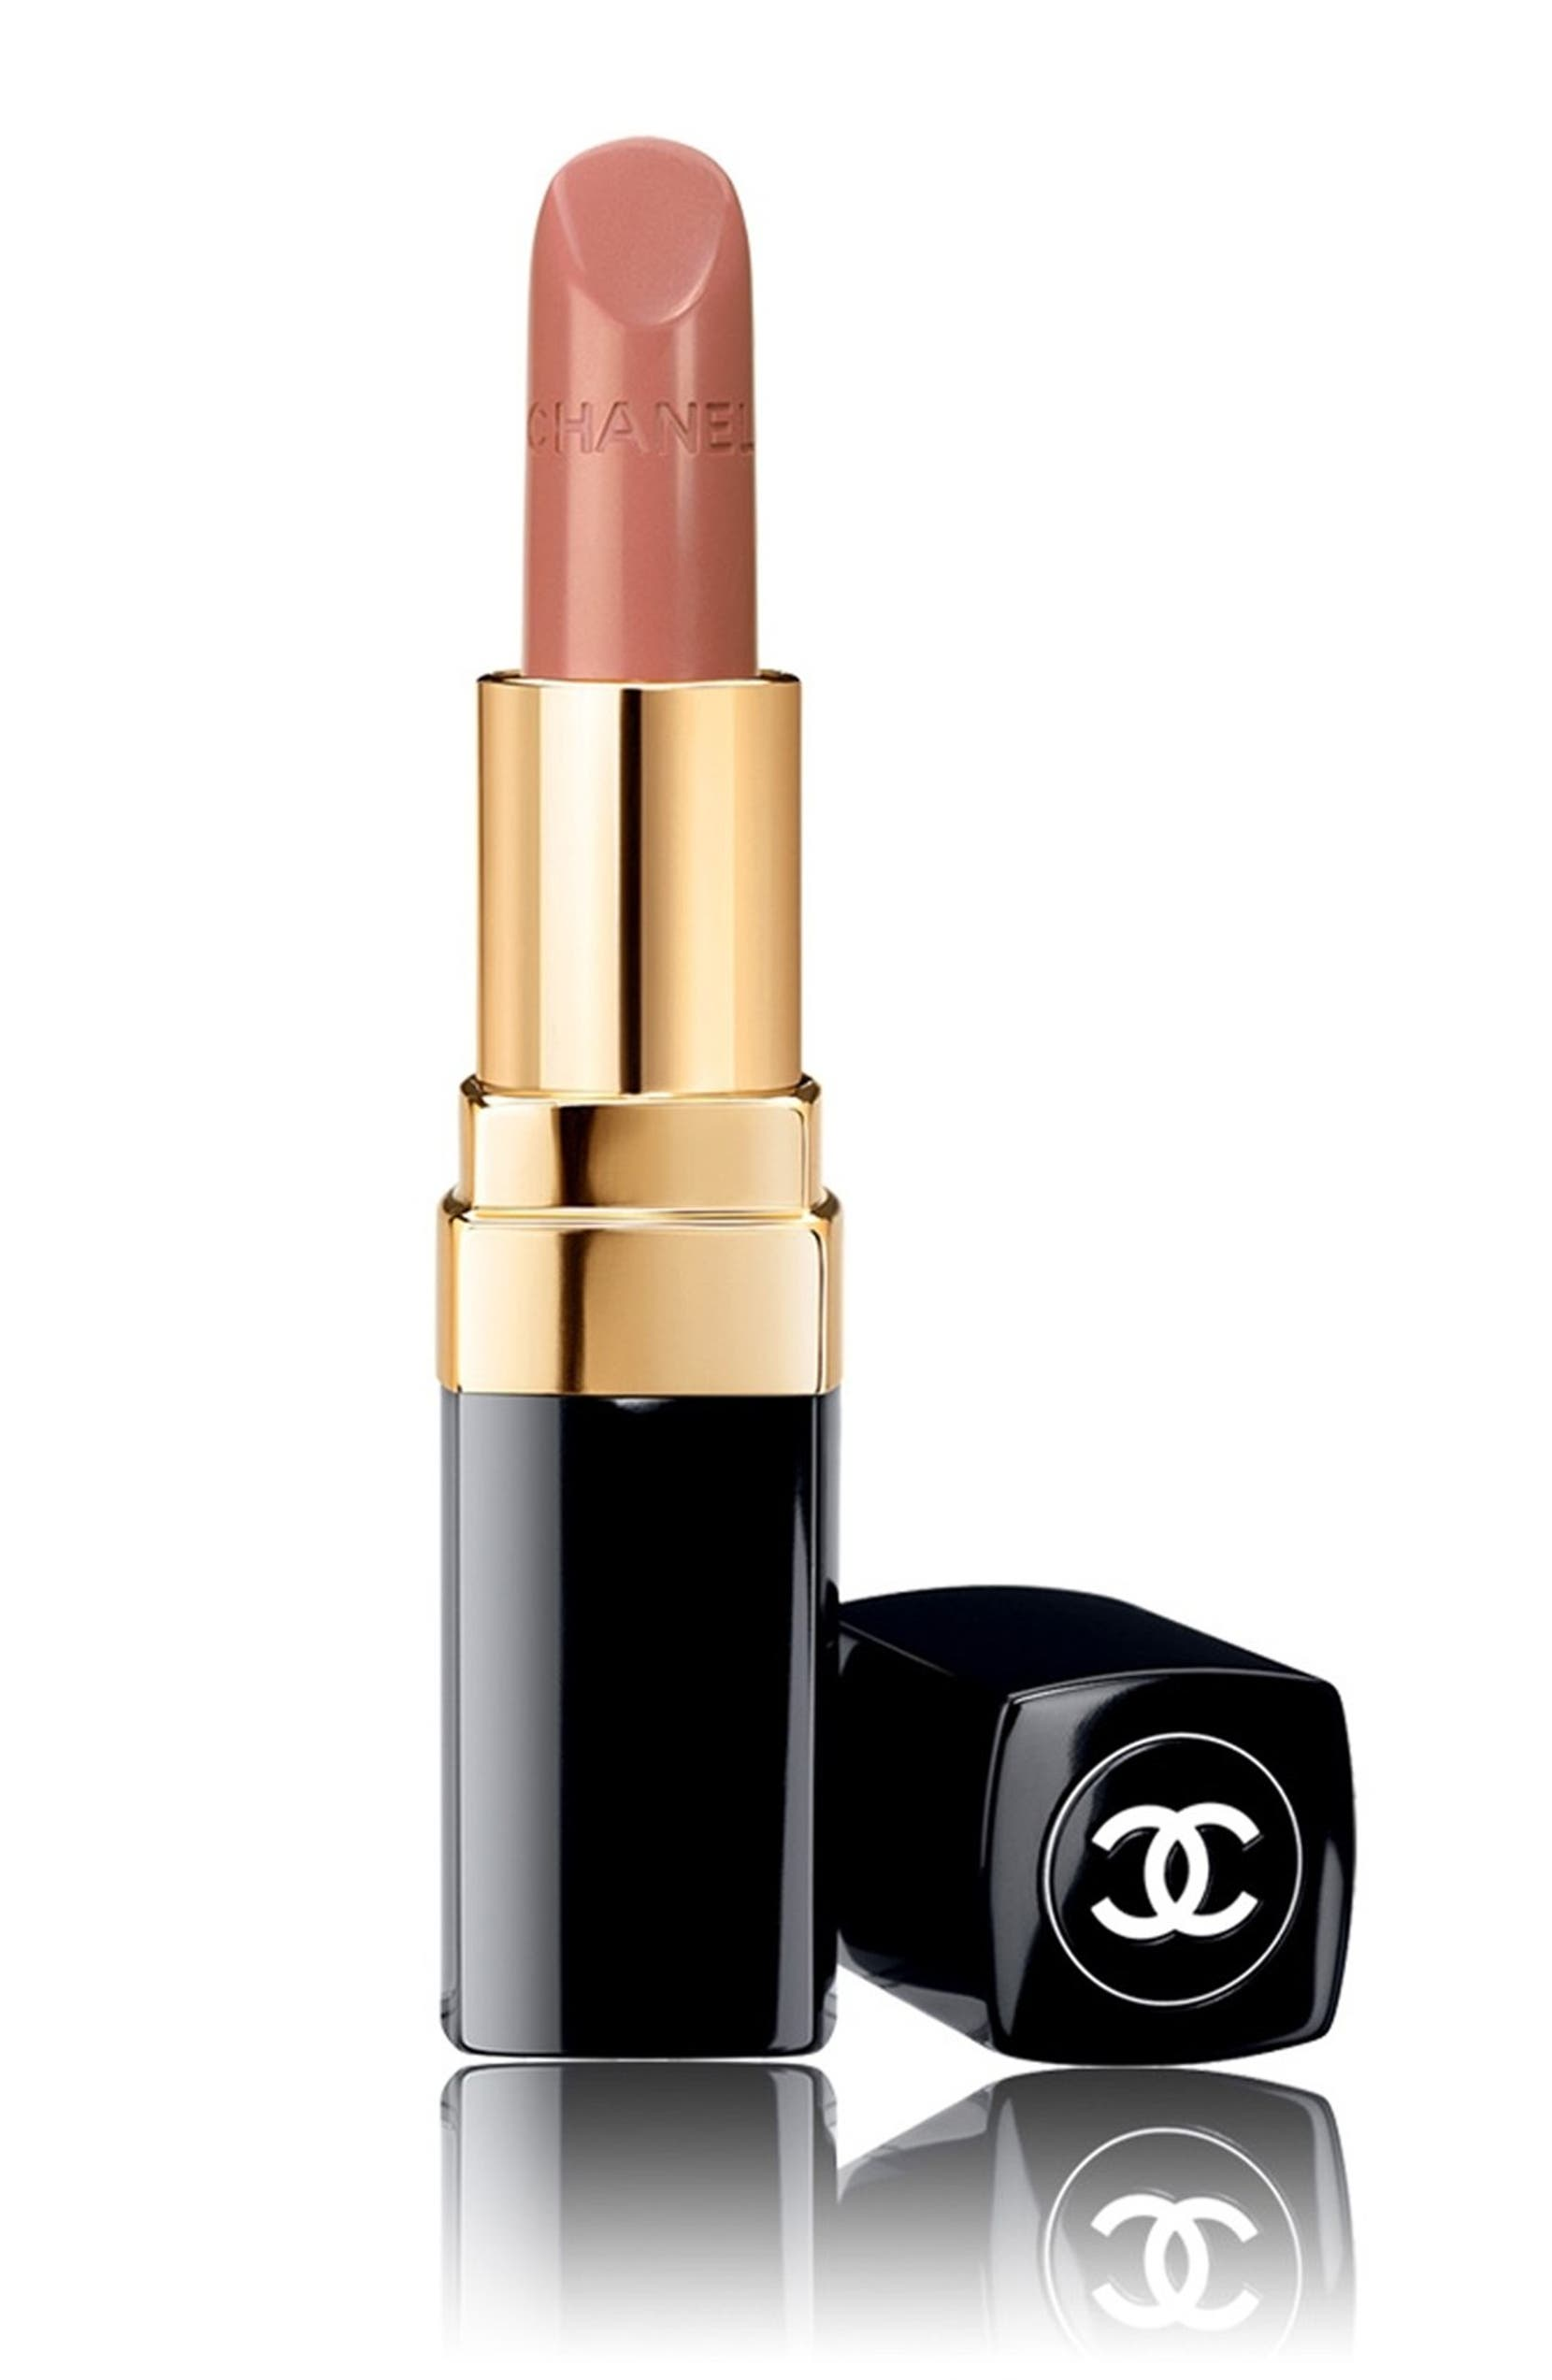 3f8688b79 CHANEL ROUGE COCO Ultra Hydrating Lip Colour | Nordstrom